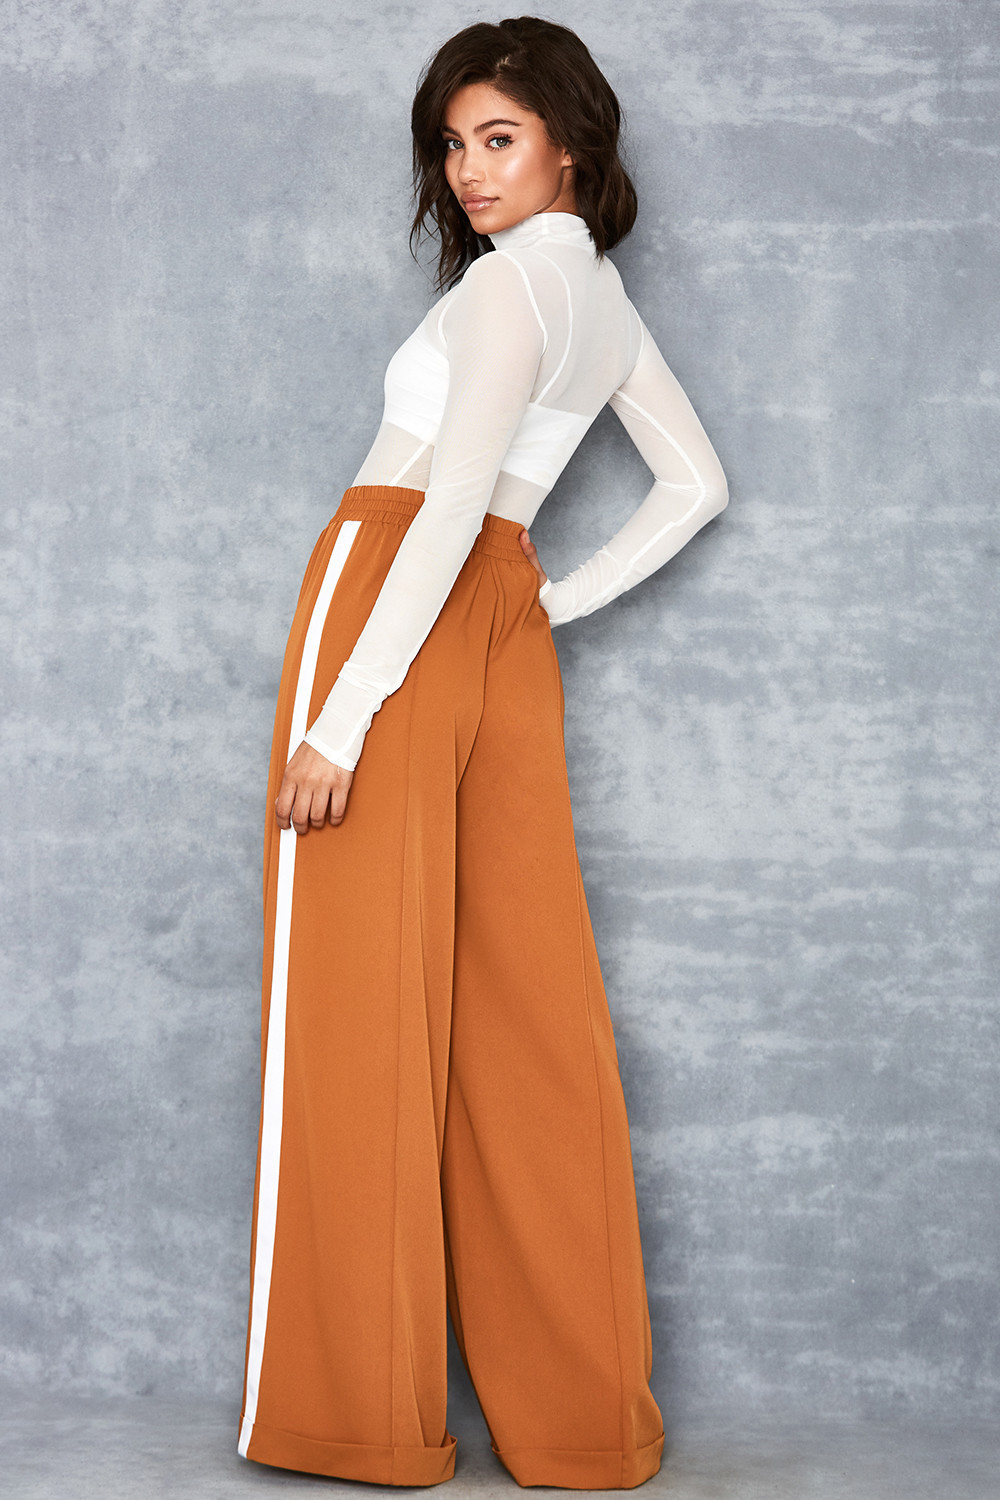 2019 European And American-Style Platform-Selling Women's Fashion Hot Selling Wide-Leg Pants